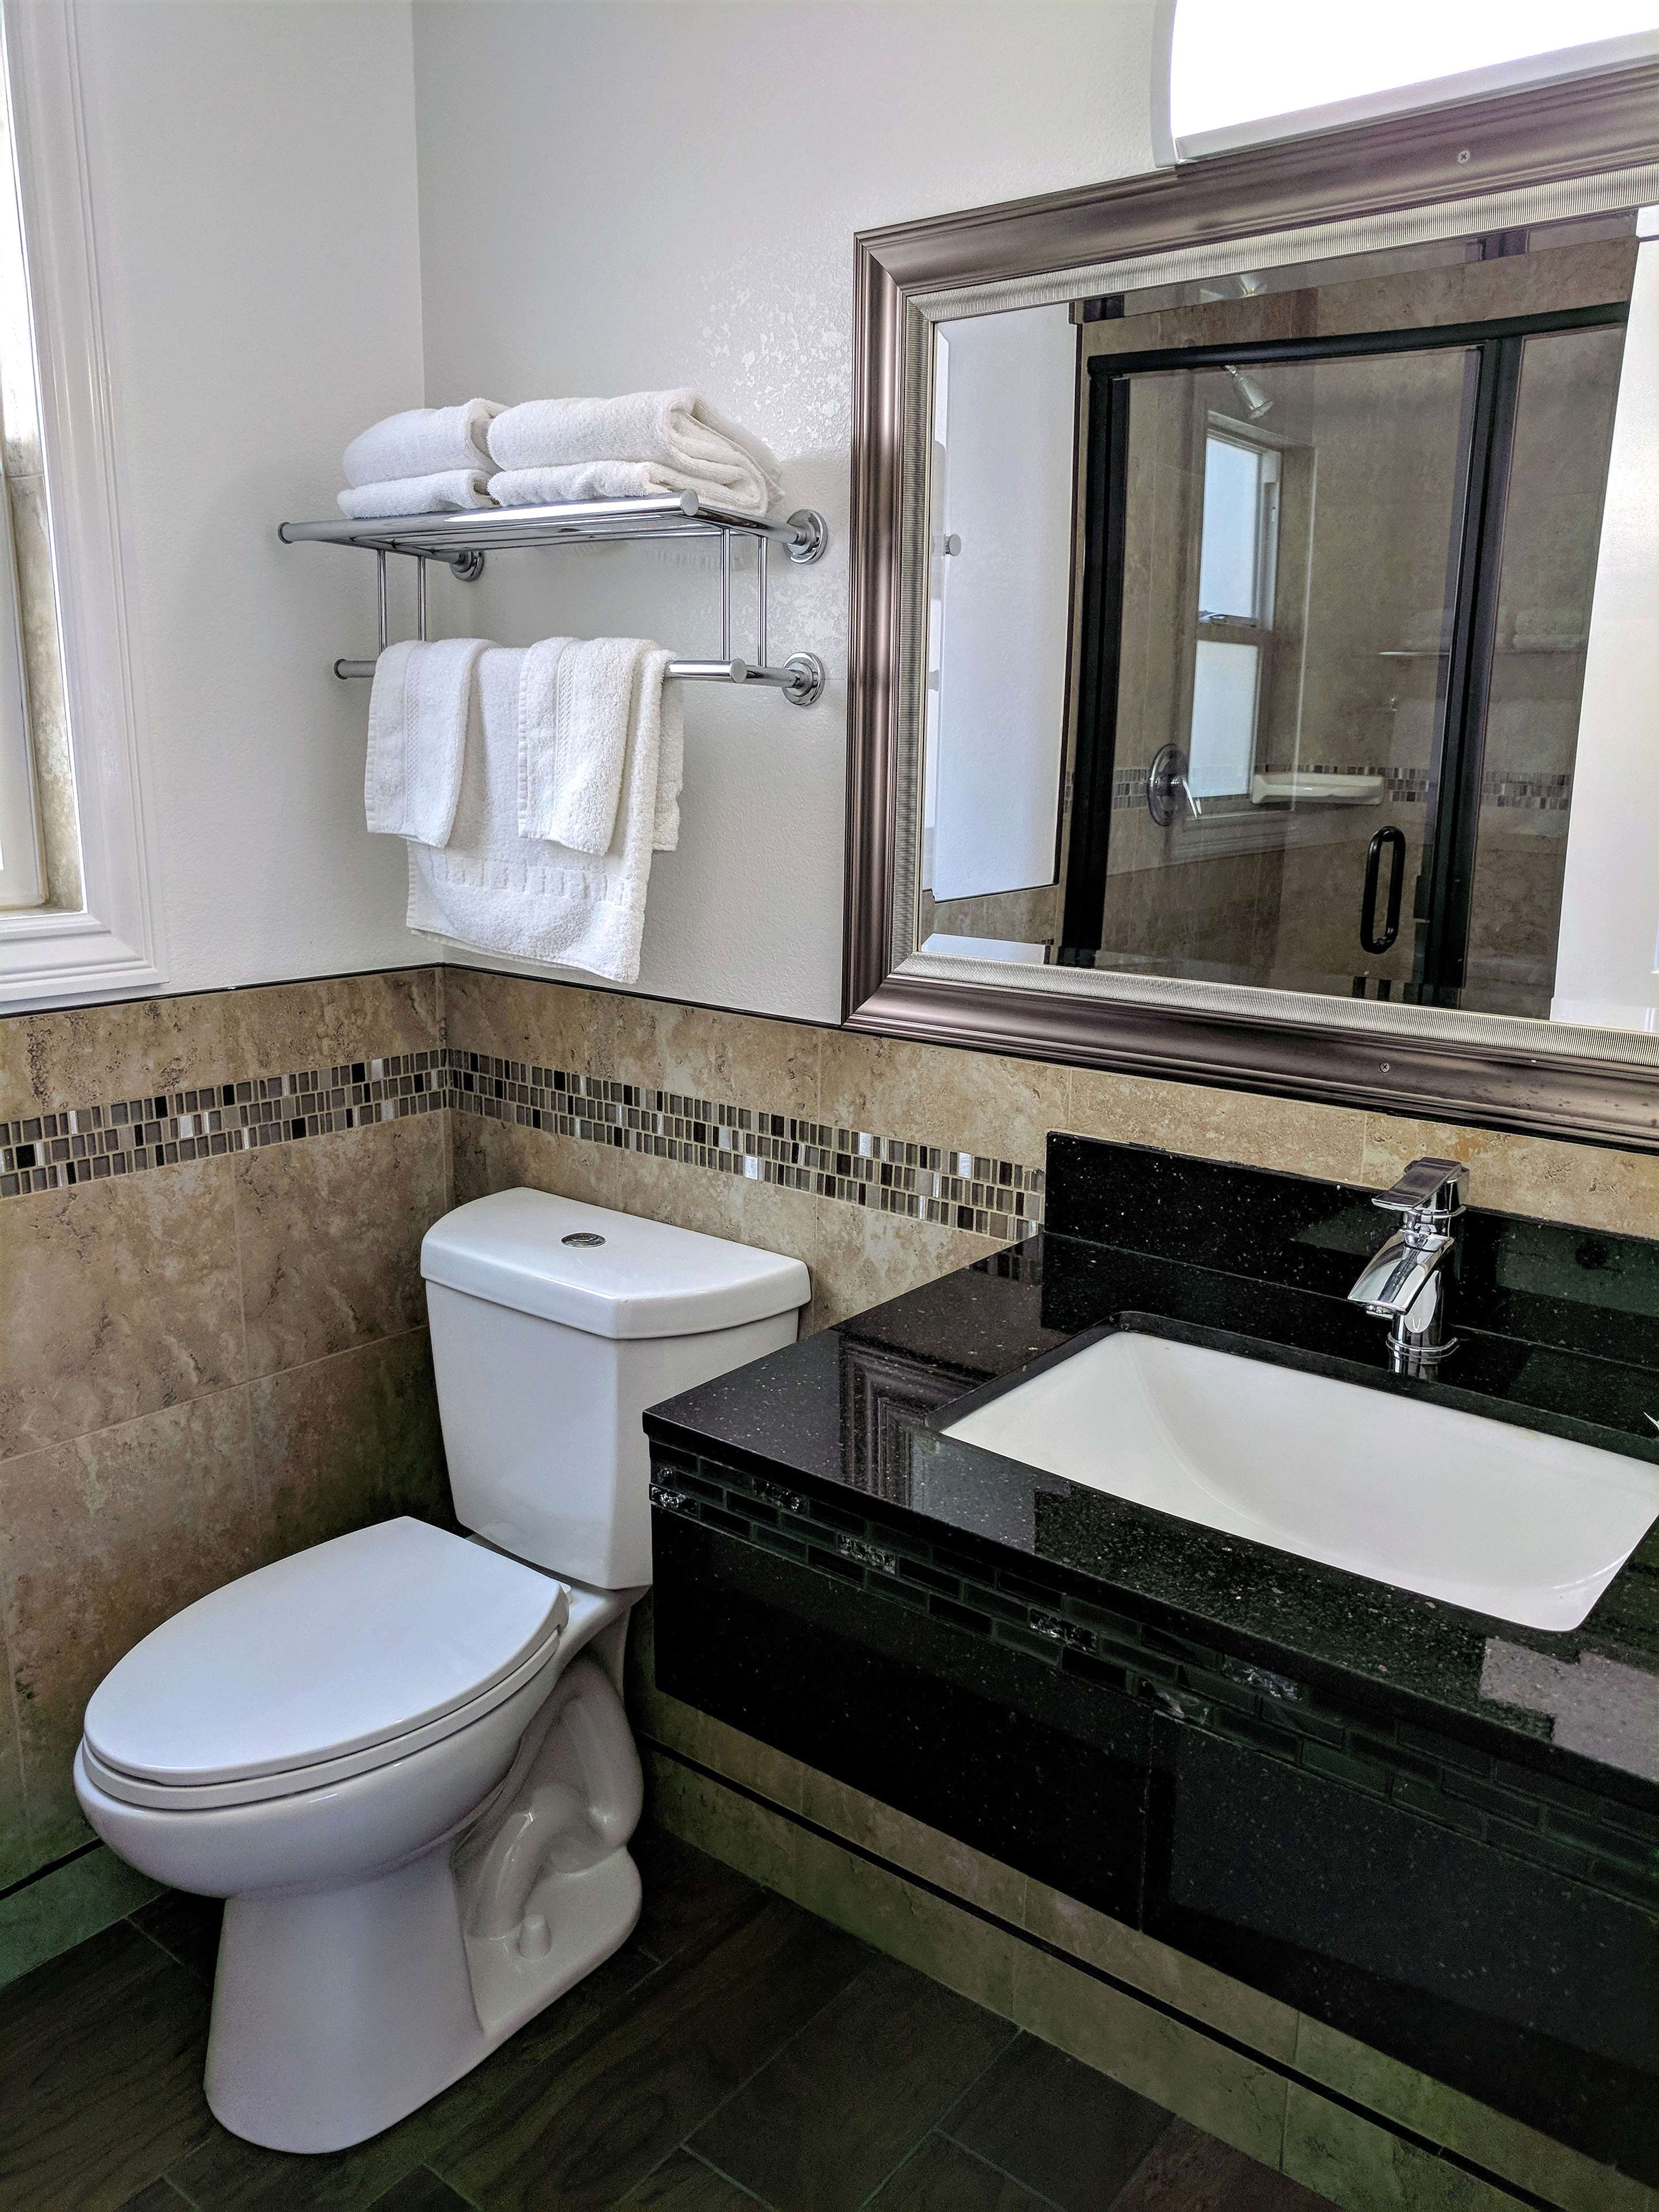 Antioch Ca Hotels And Motels